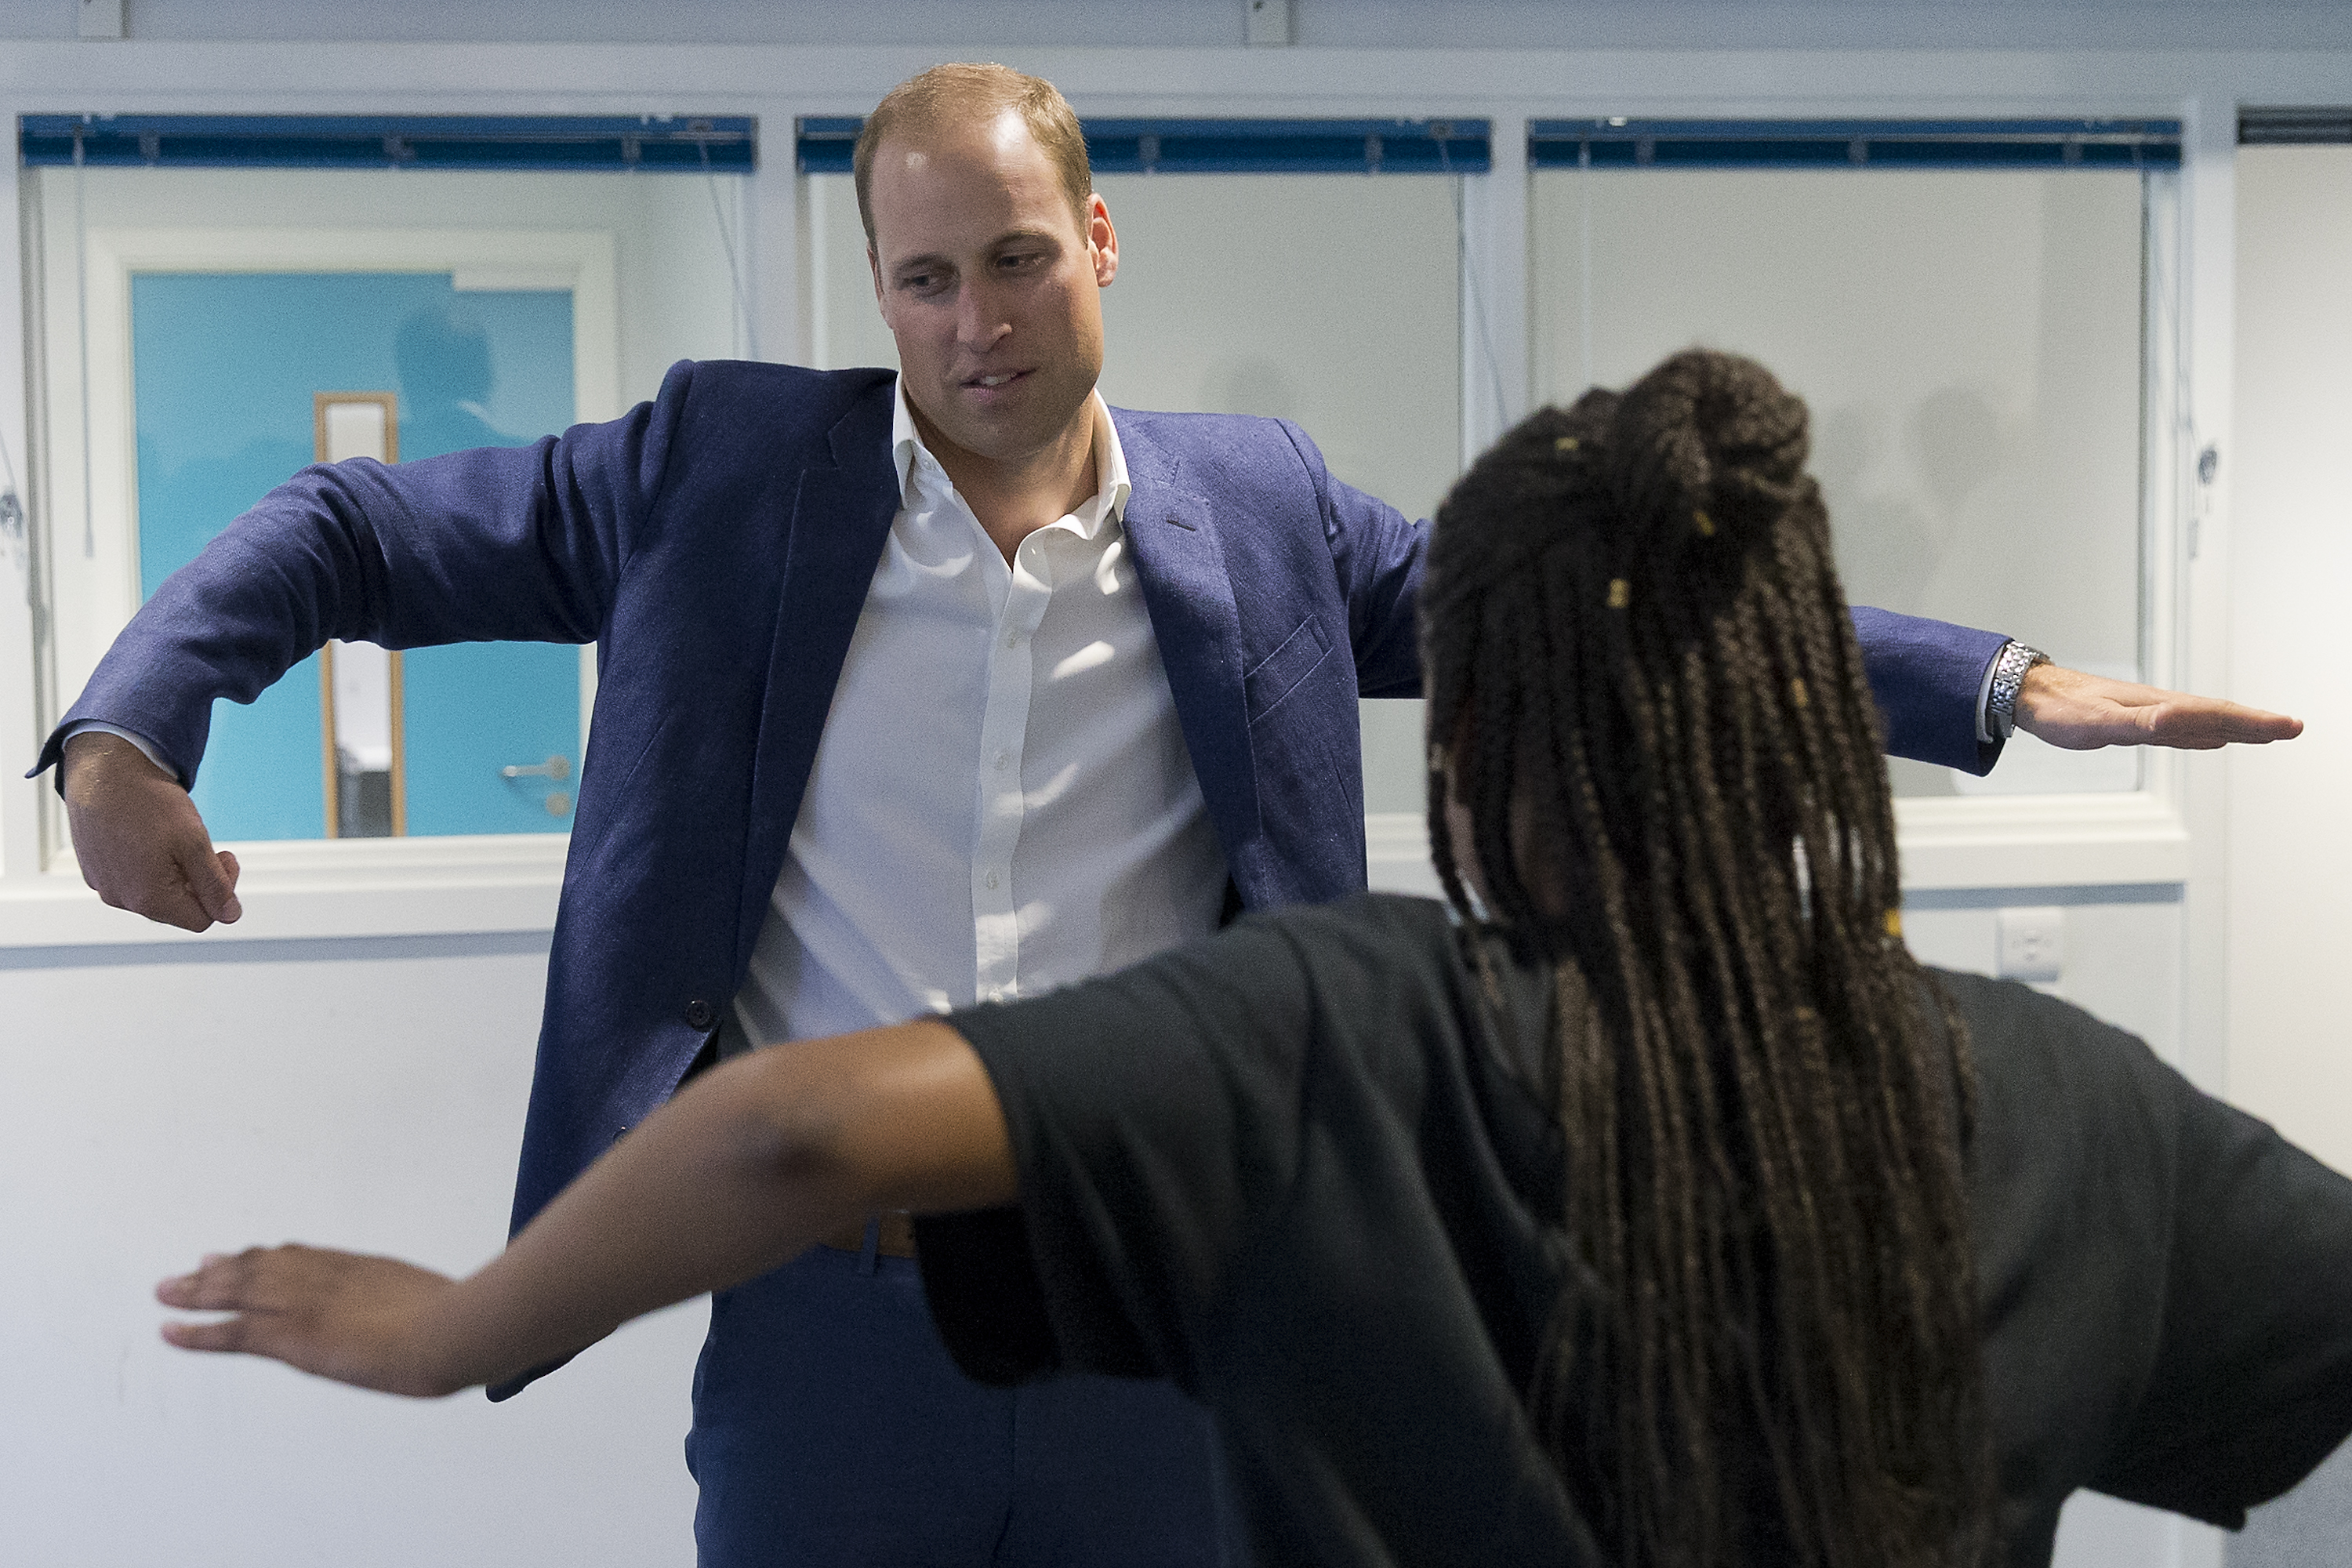 Prince William dancing at a royal visit